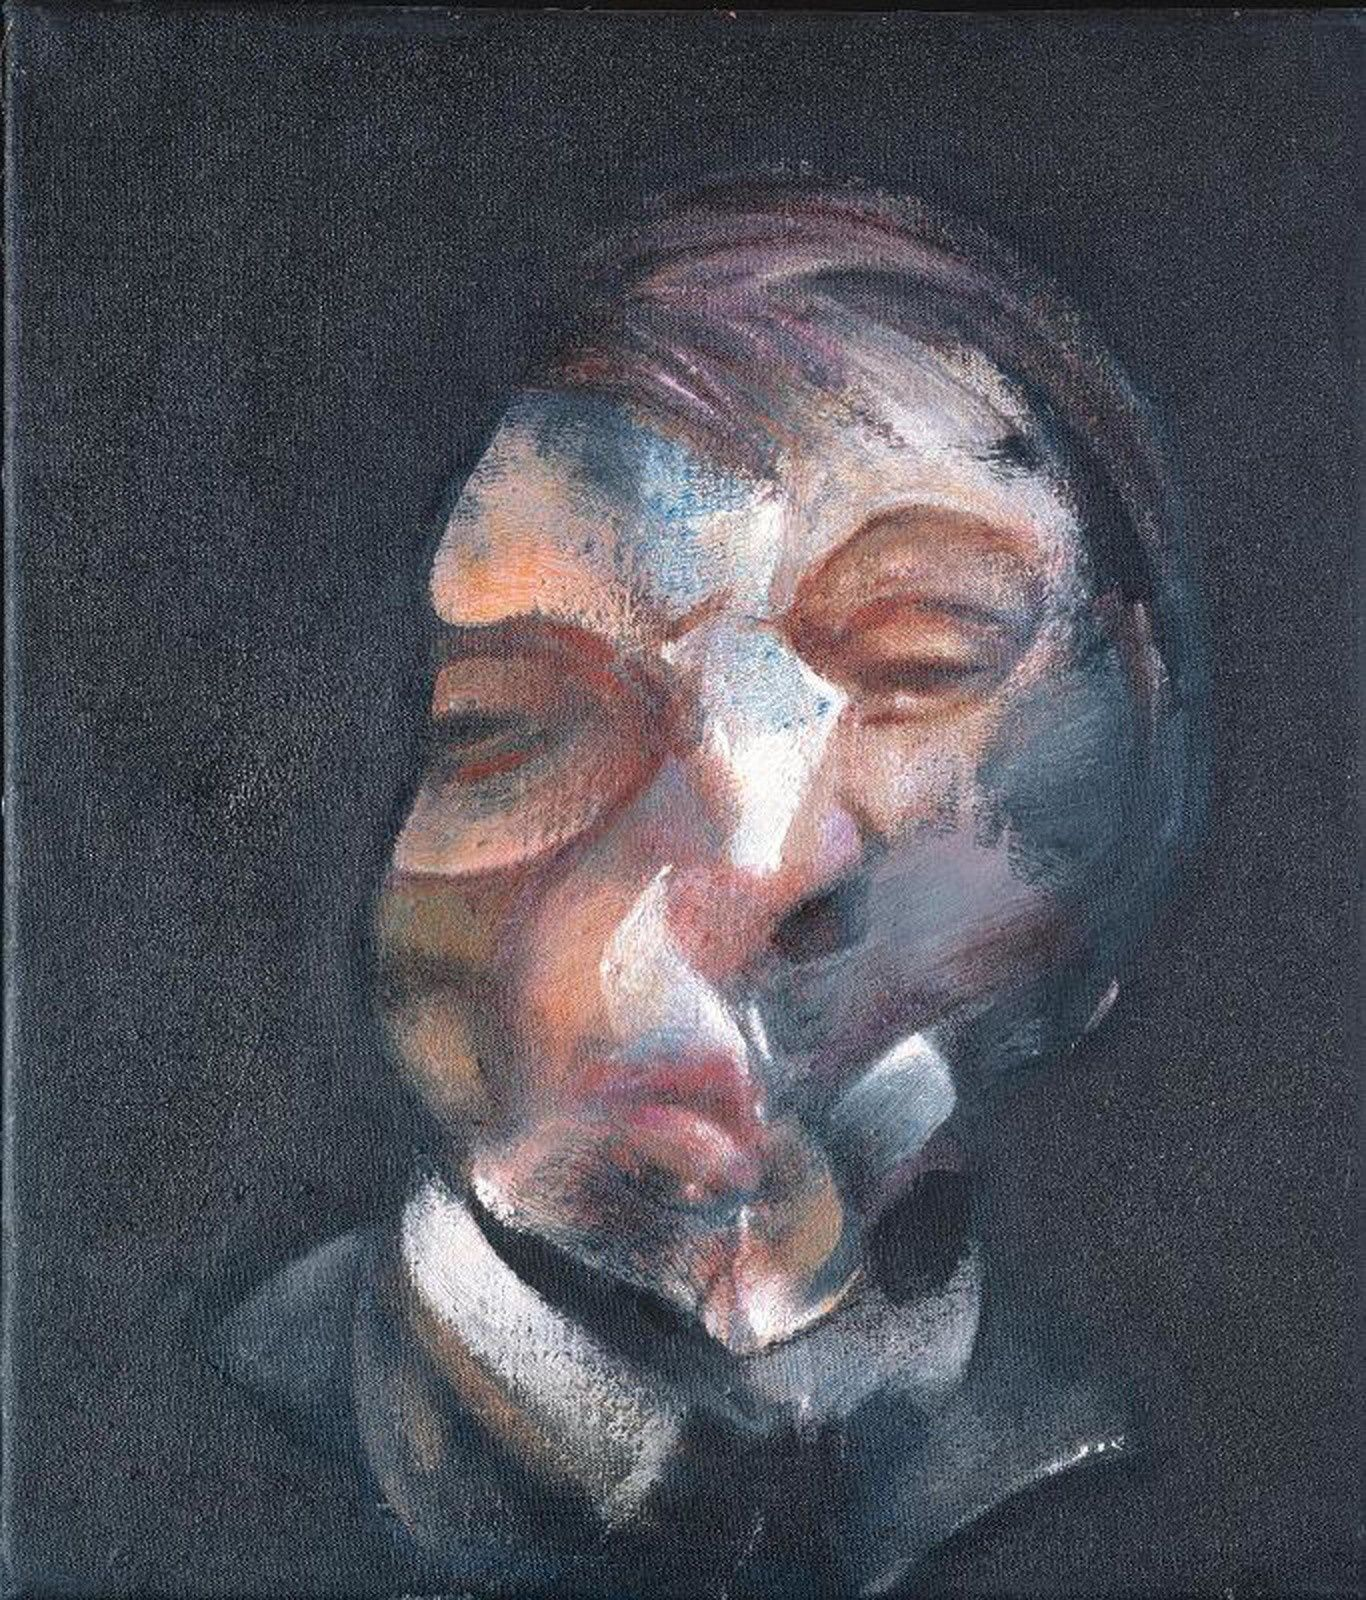 """Selfportrait"", 1971 de Francis BACON © Philippe Migeat - Centre Pompidou, MNAM-CCI /Dist. RMN-GP © The Estate of Francis Bacon / All rights reserved / Adagp, Paris and DACS, Londres"